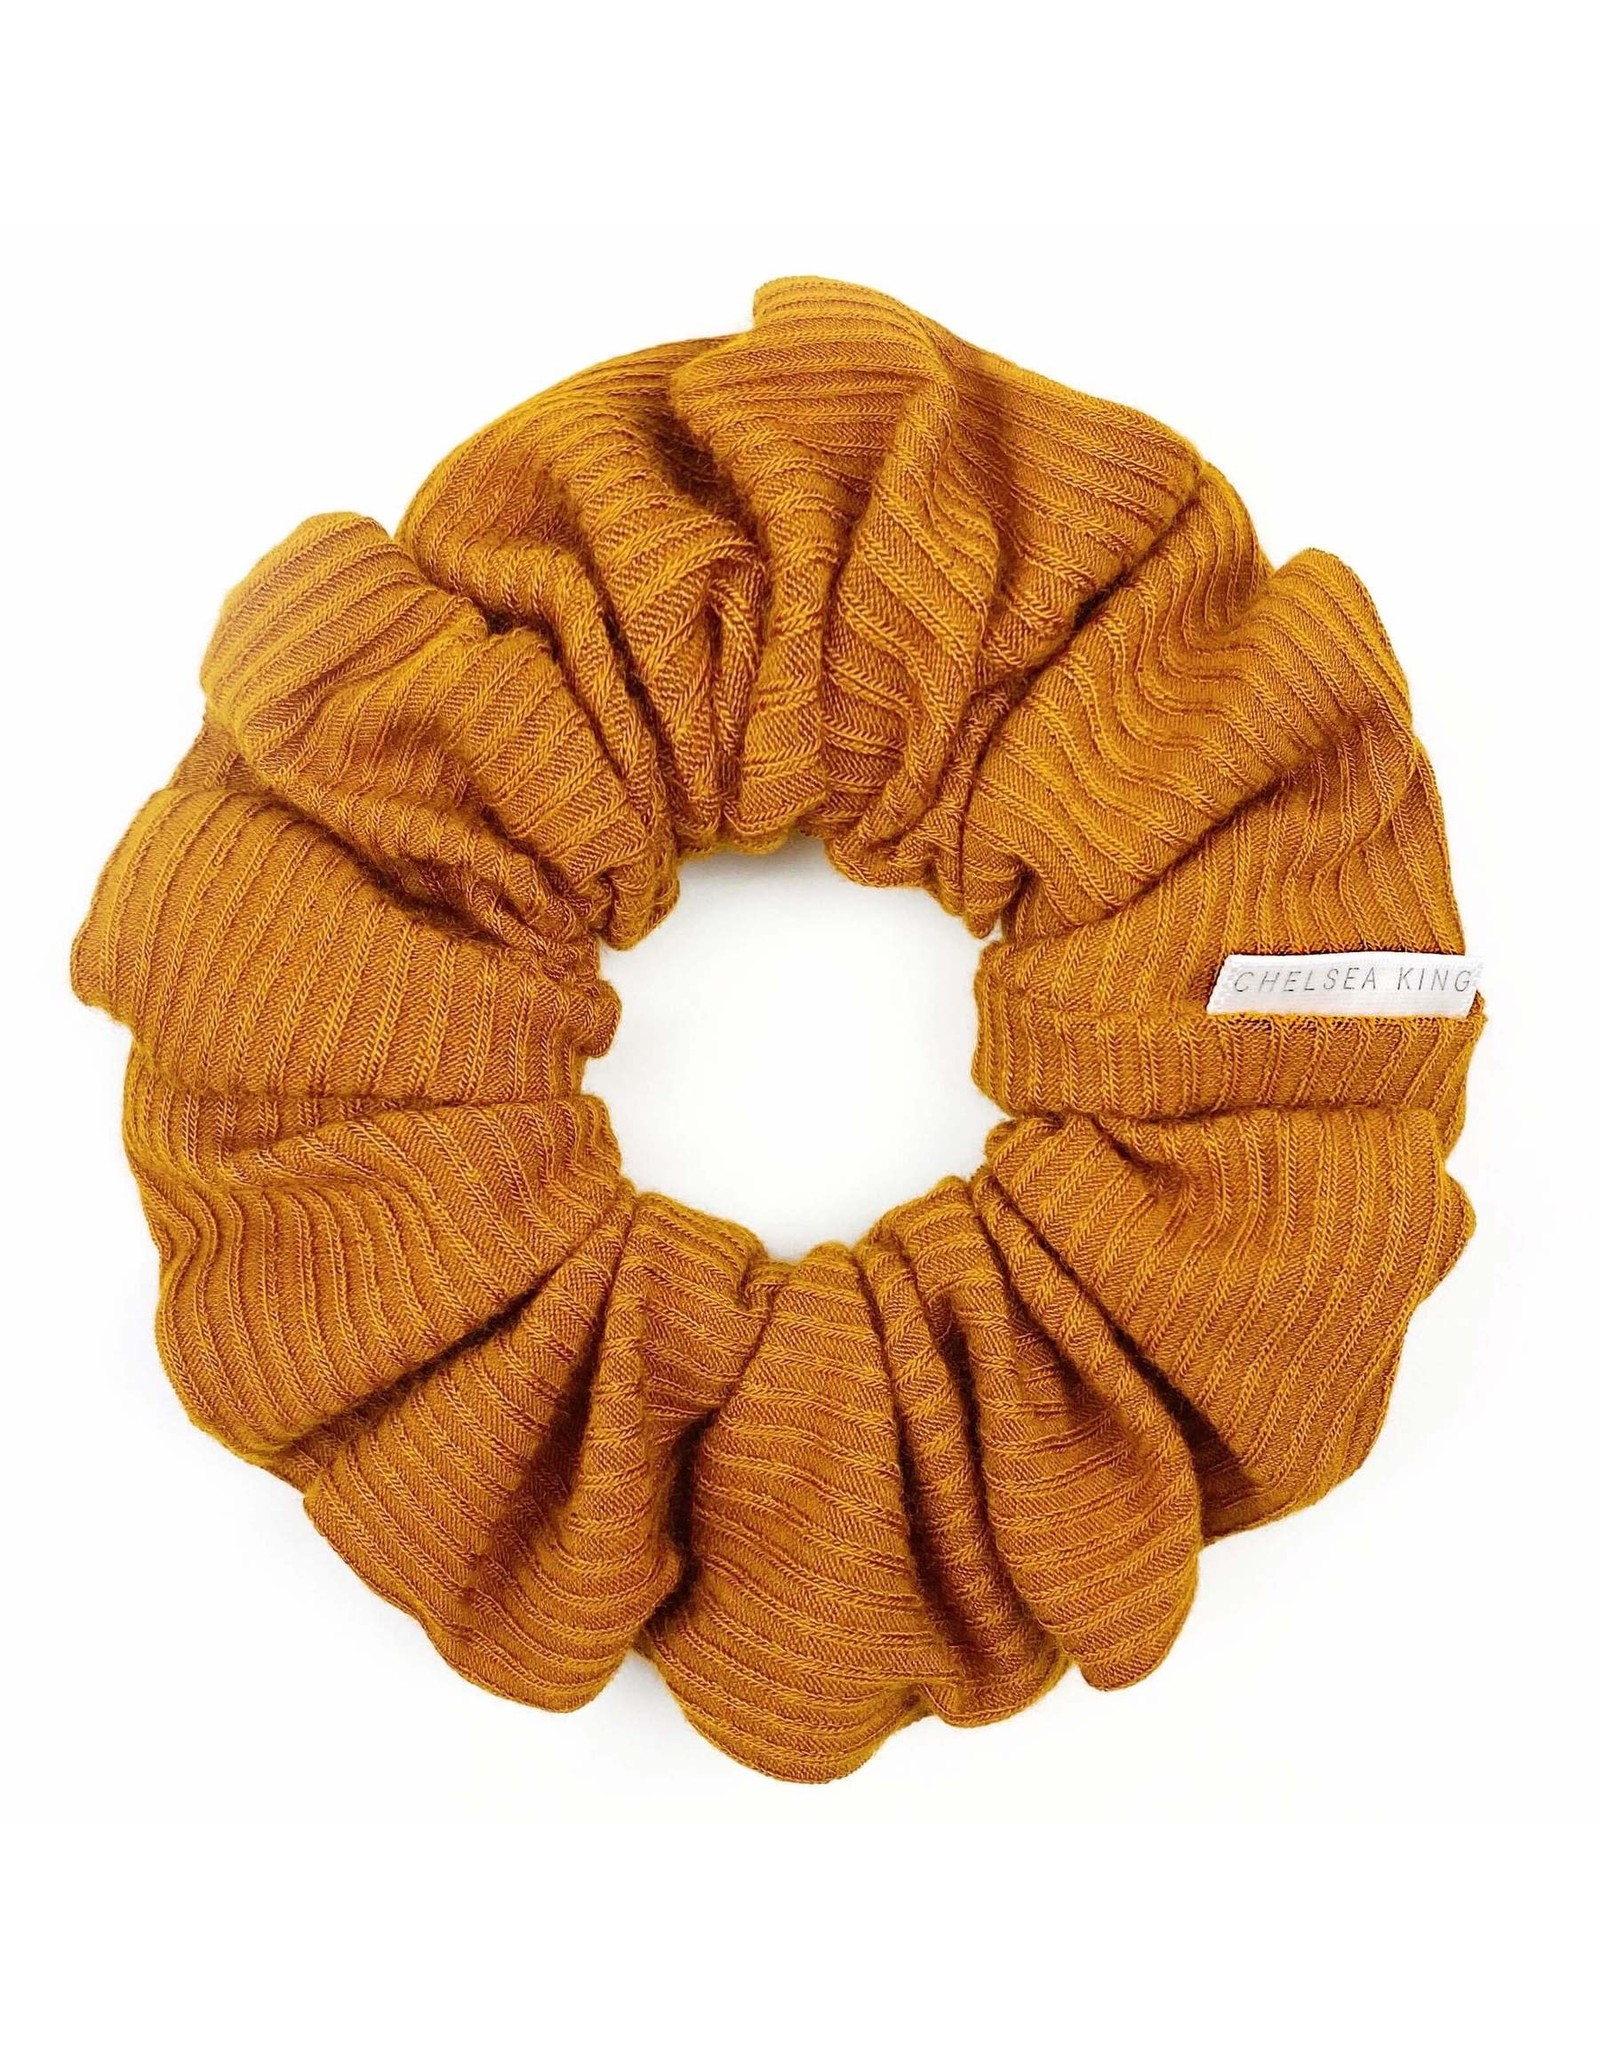 Chelsea King French Ribbed Caramel Scrunchie